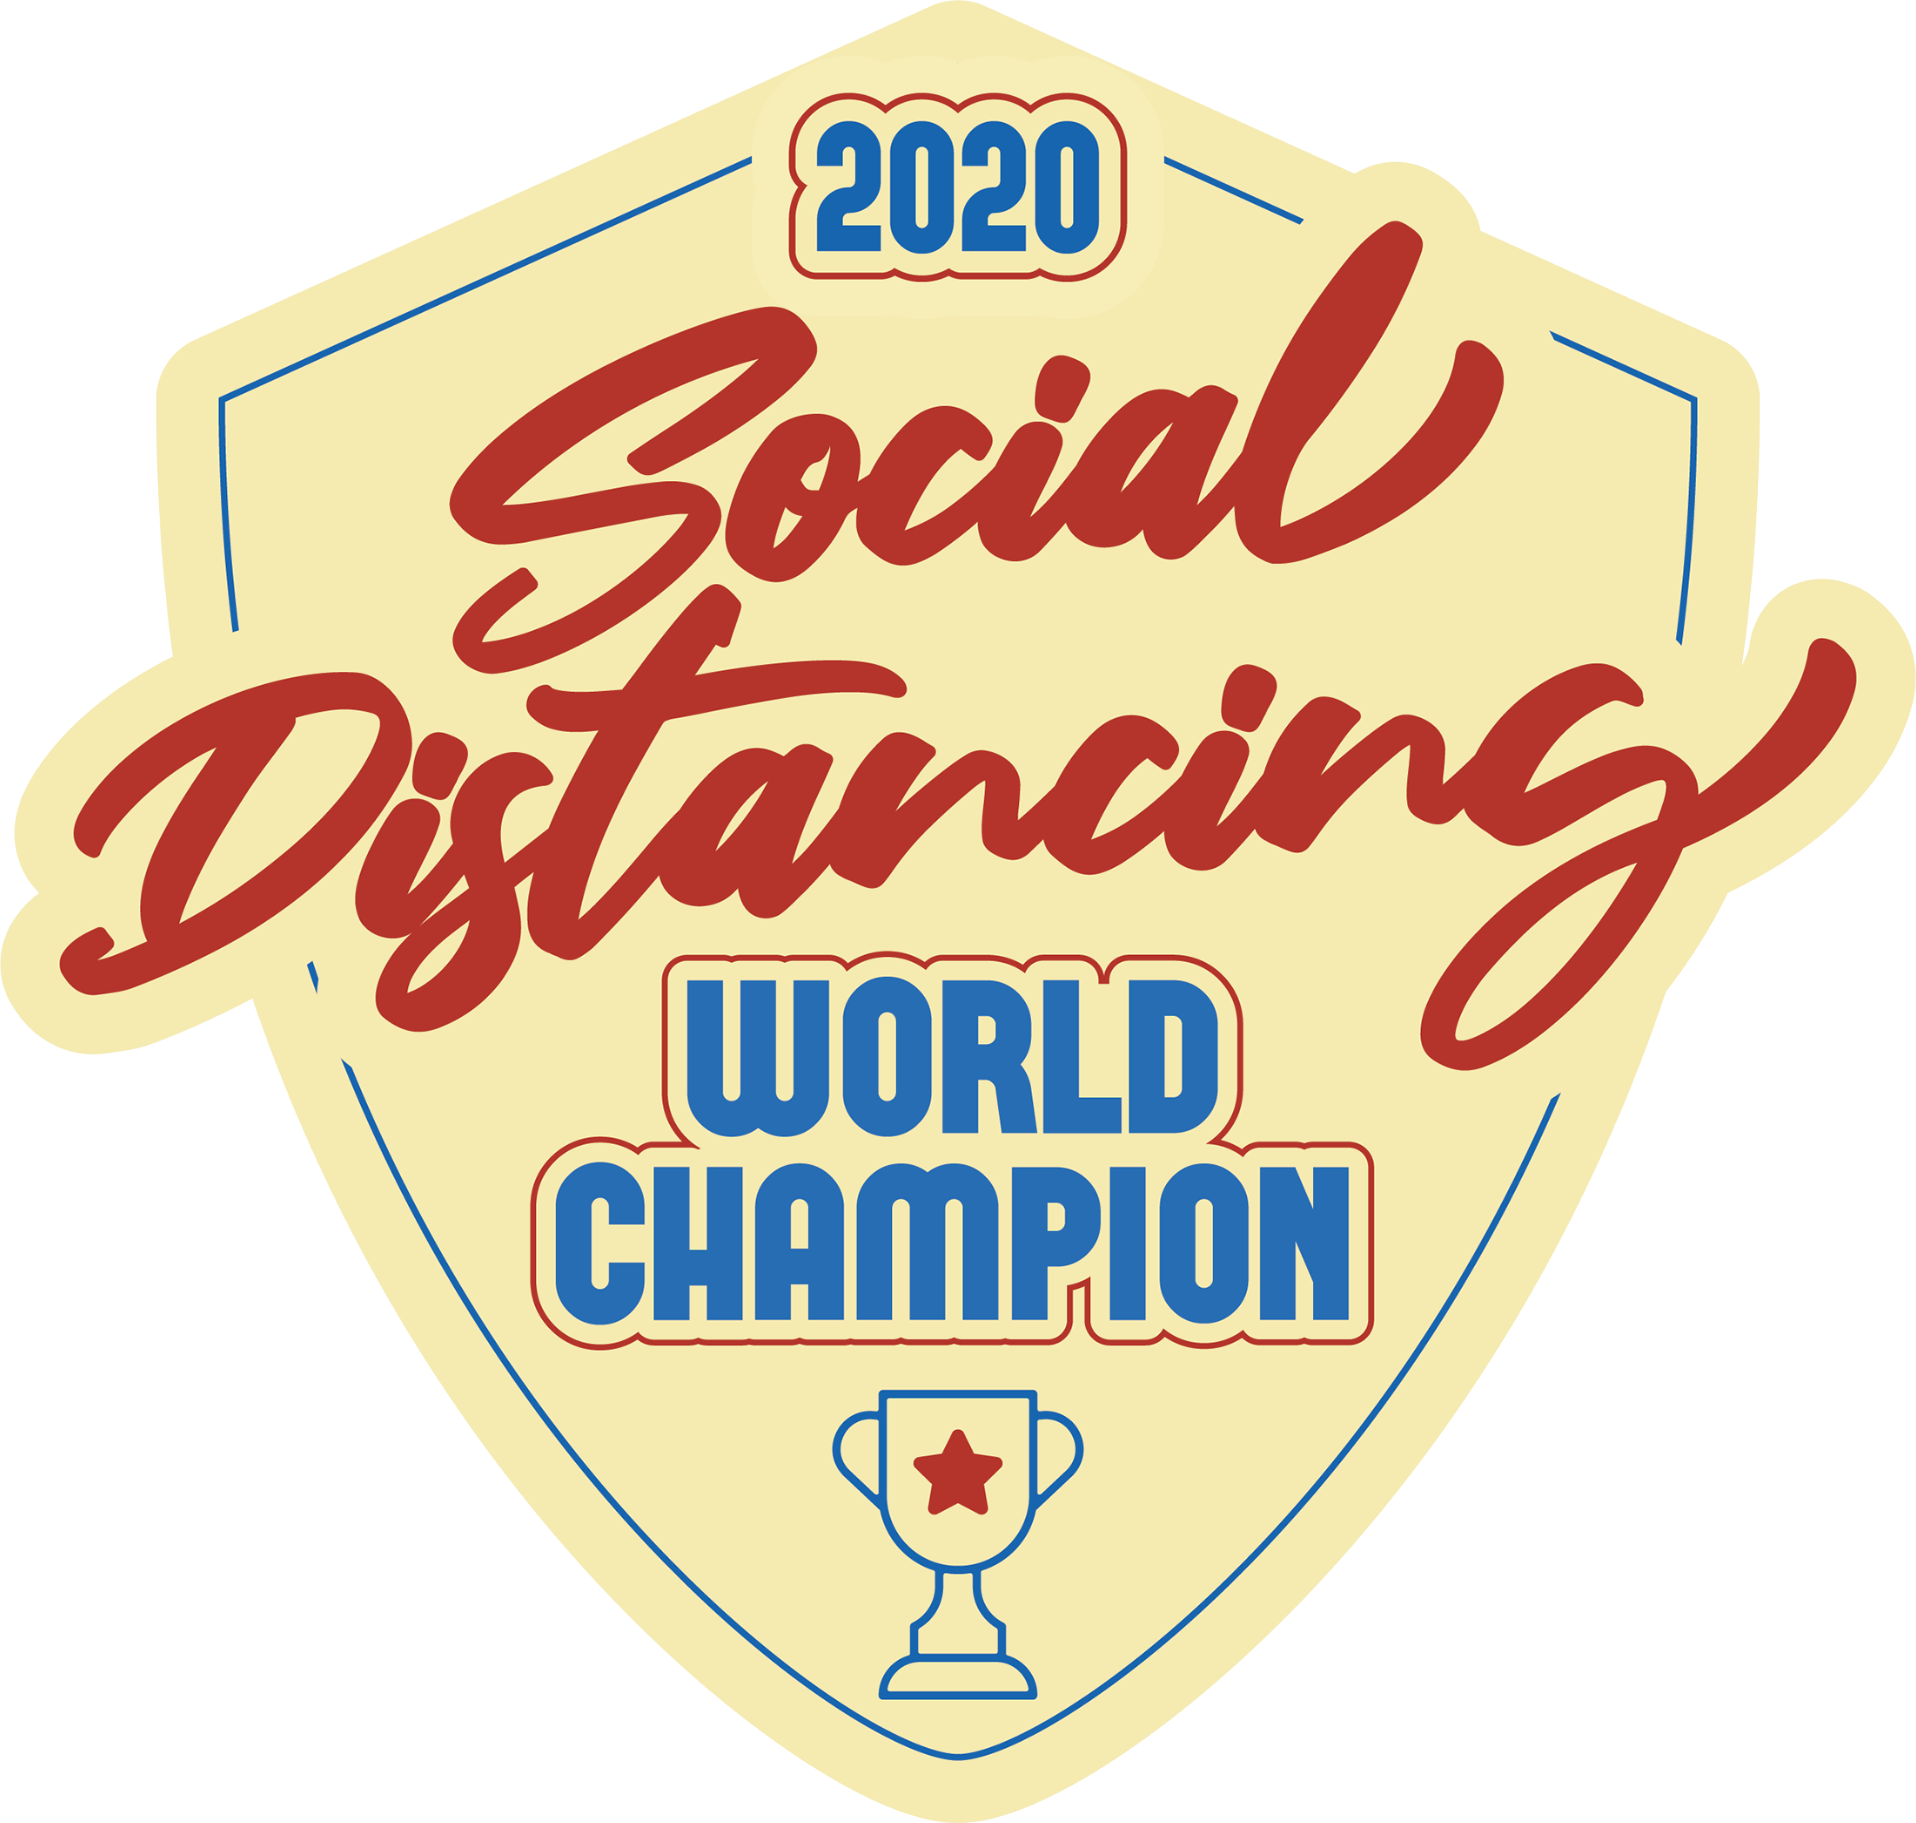 Social Distancing World Champ